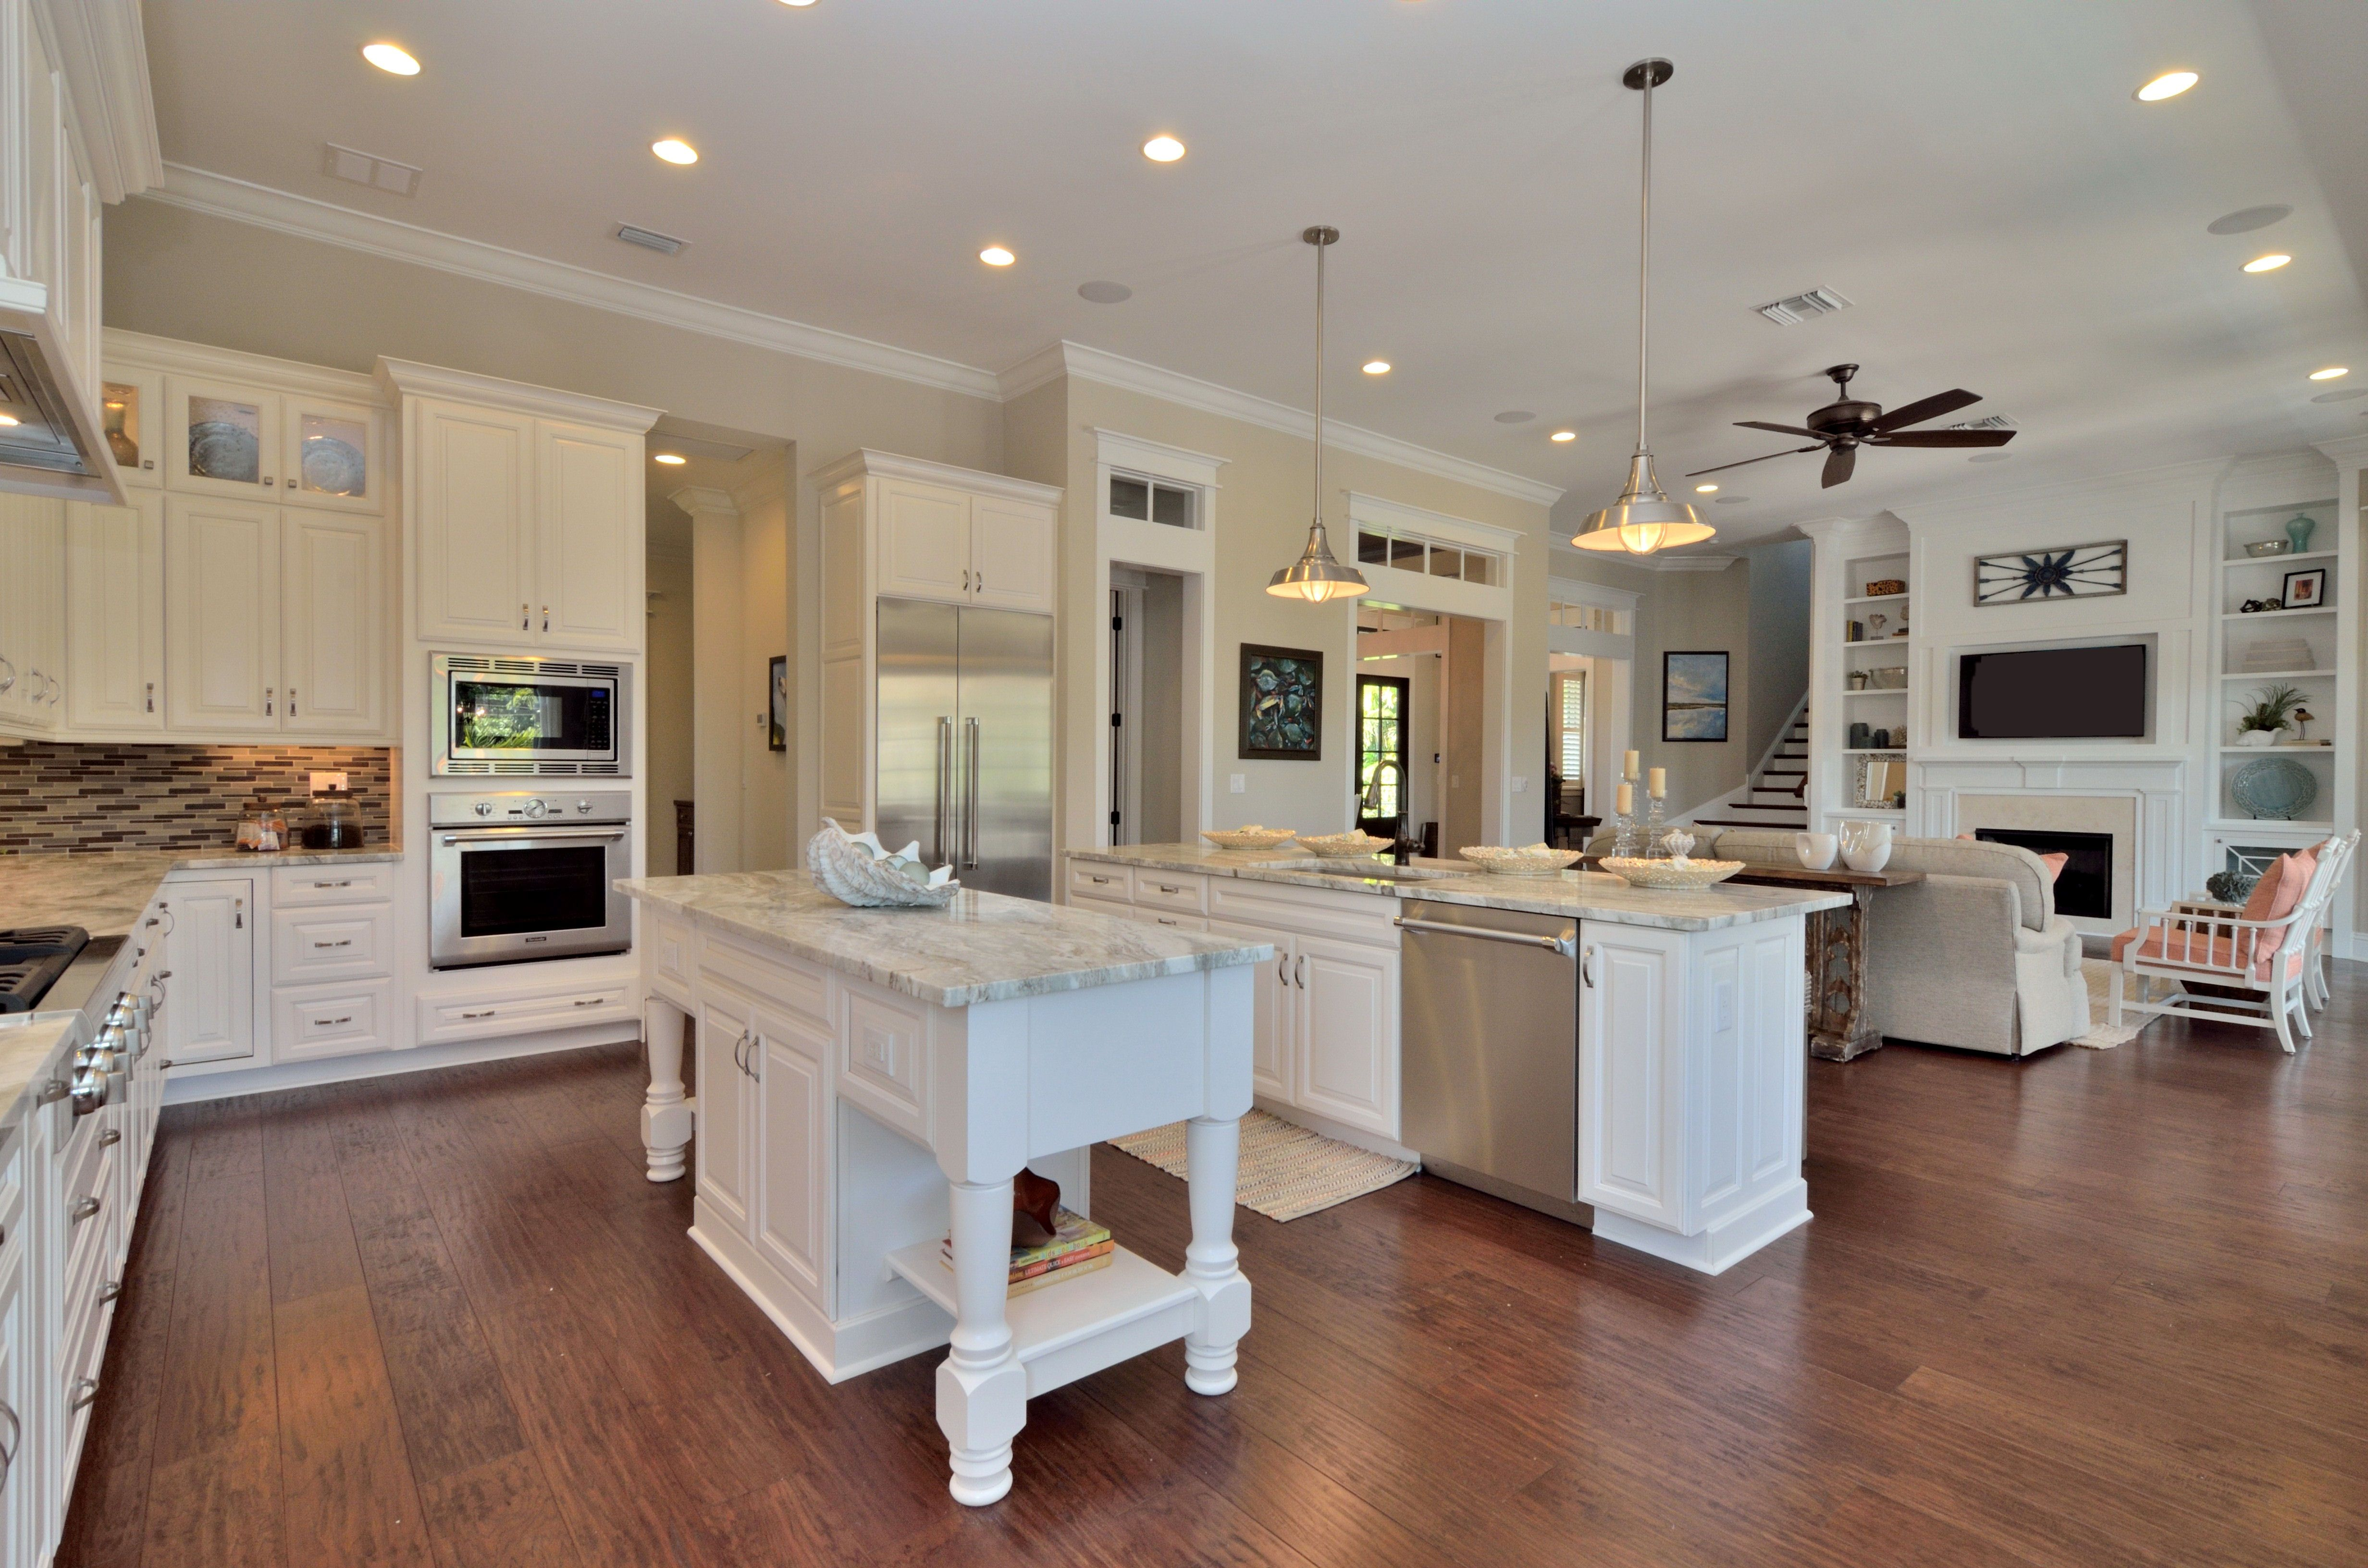 Open Floor Plan With Double Islands Thermador Kitchen Appliances Built By Javic Homes In Tampa Kitchen Floor Plans Floor Plan Design Home